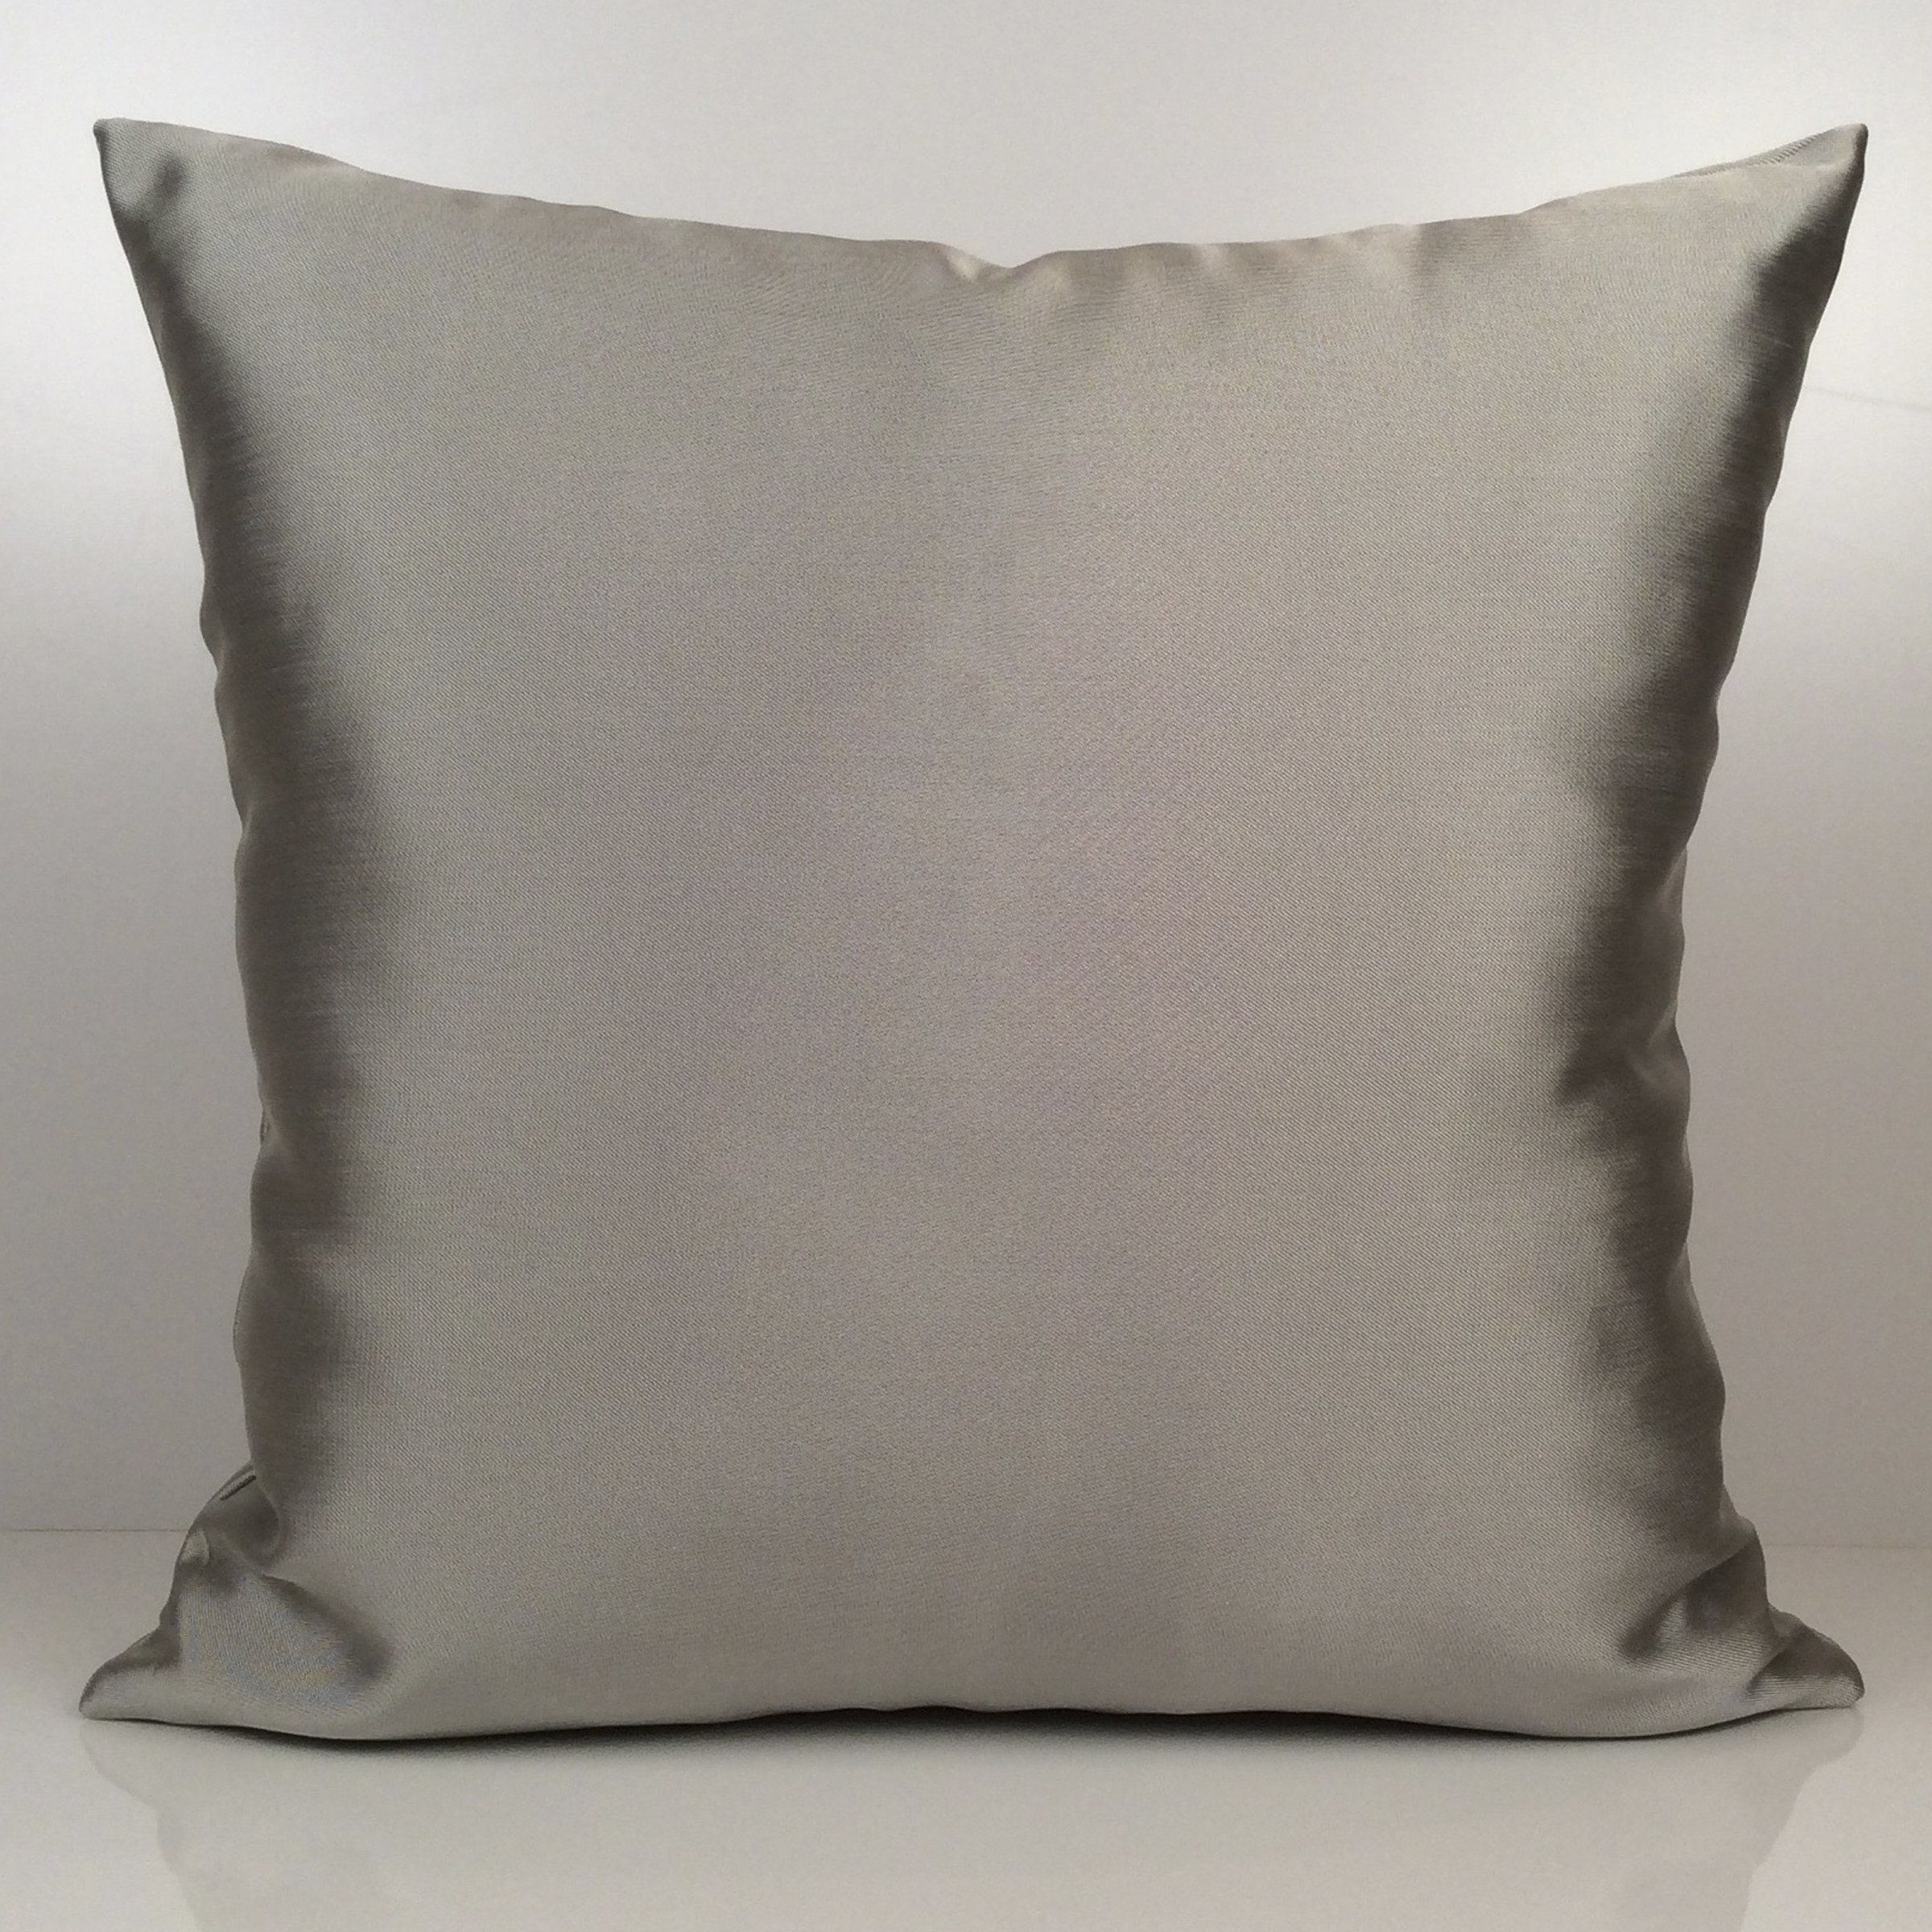 Solid silver pillow cover throw pillow cover decorative pillow